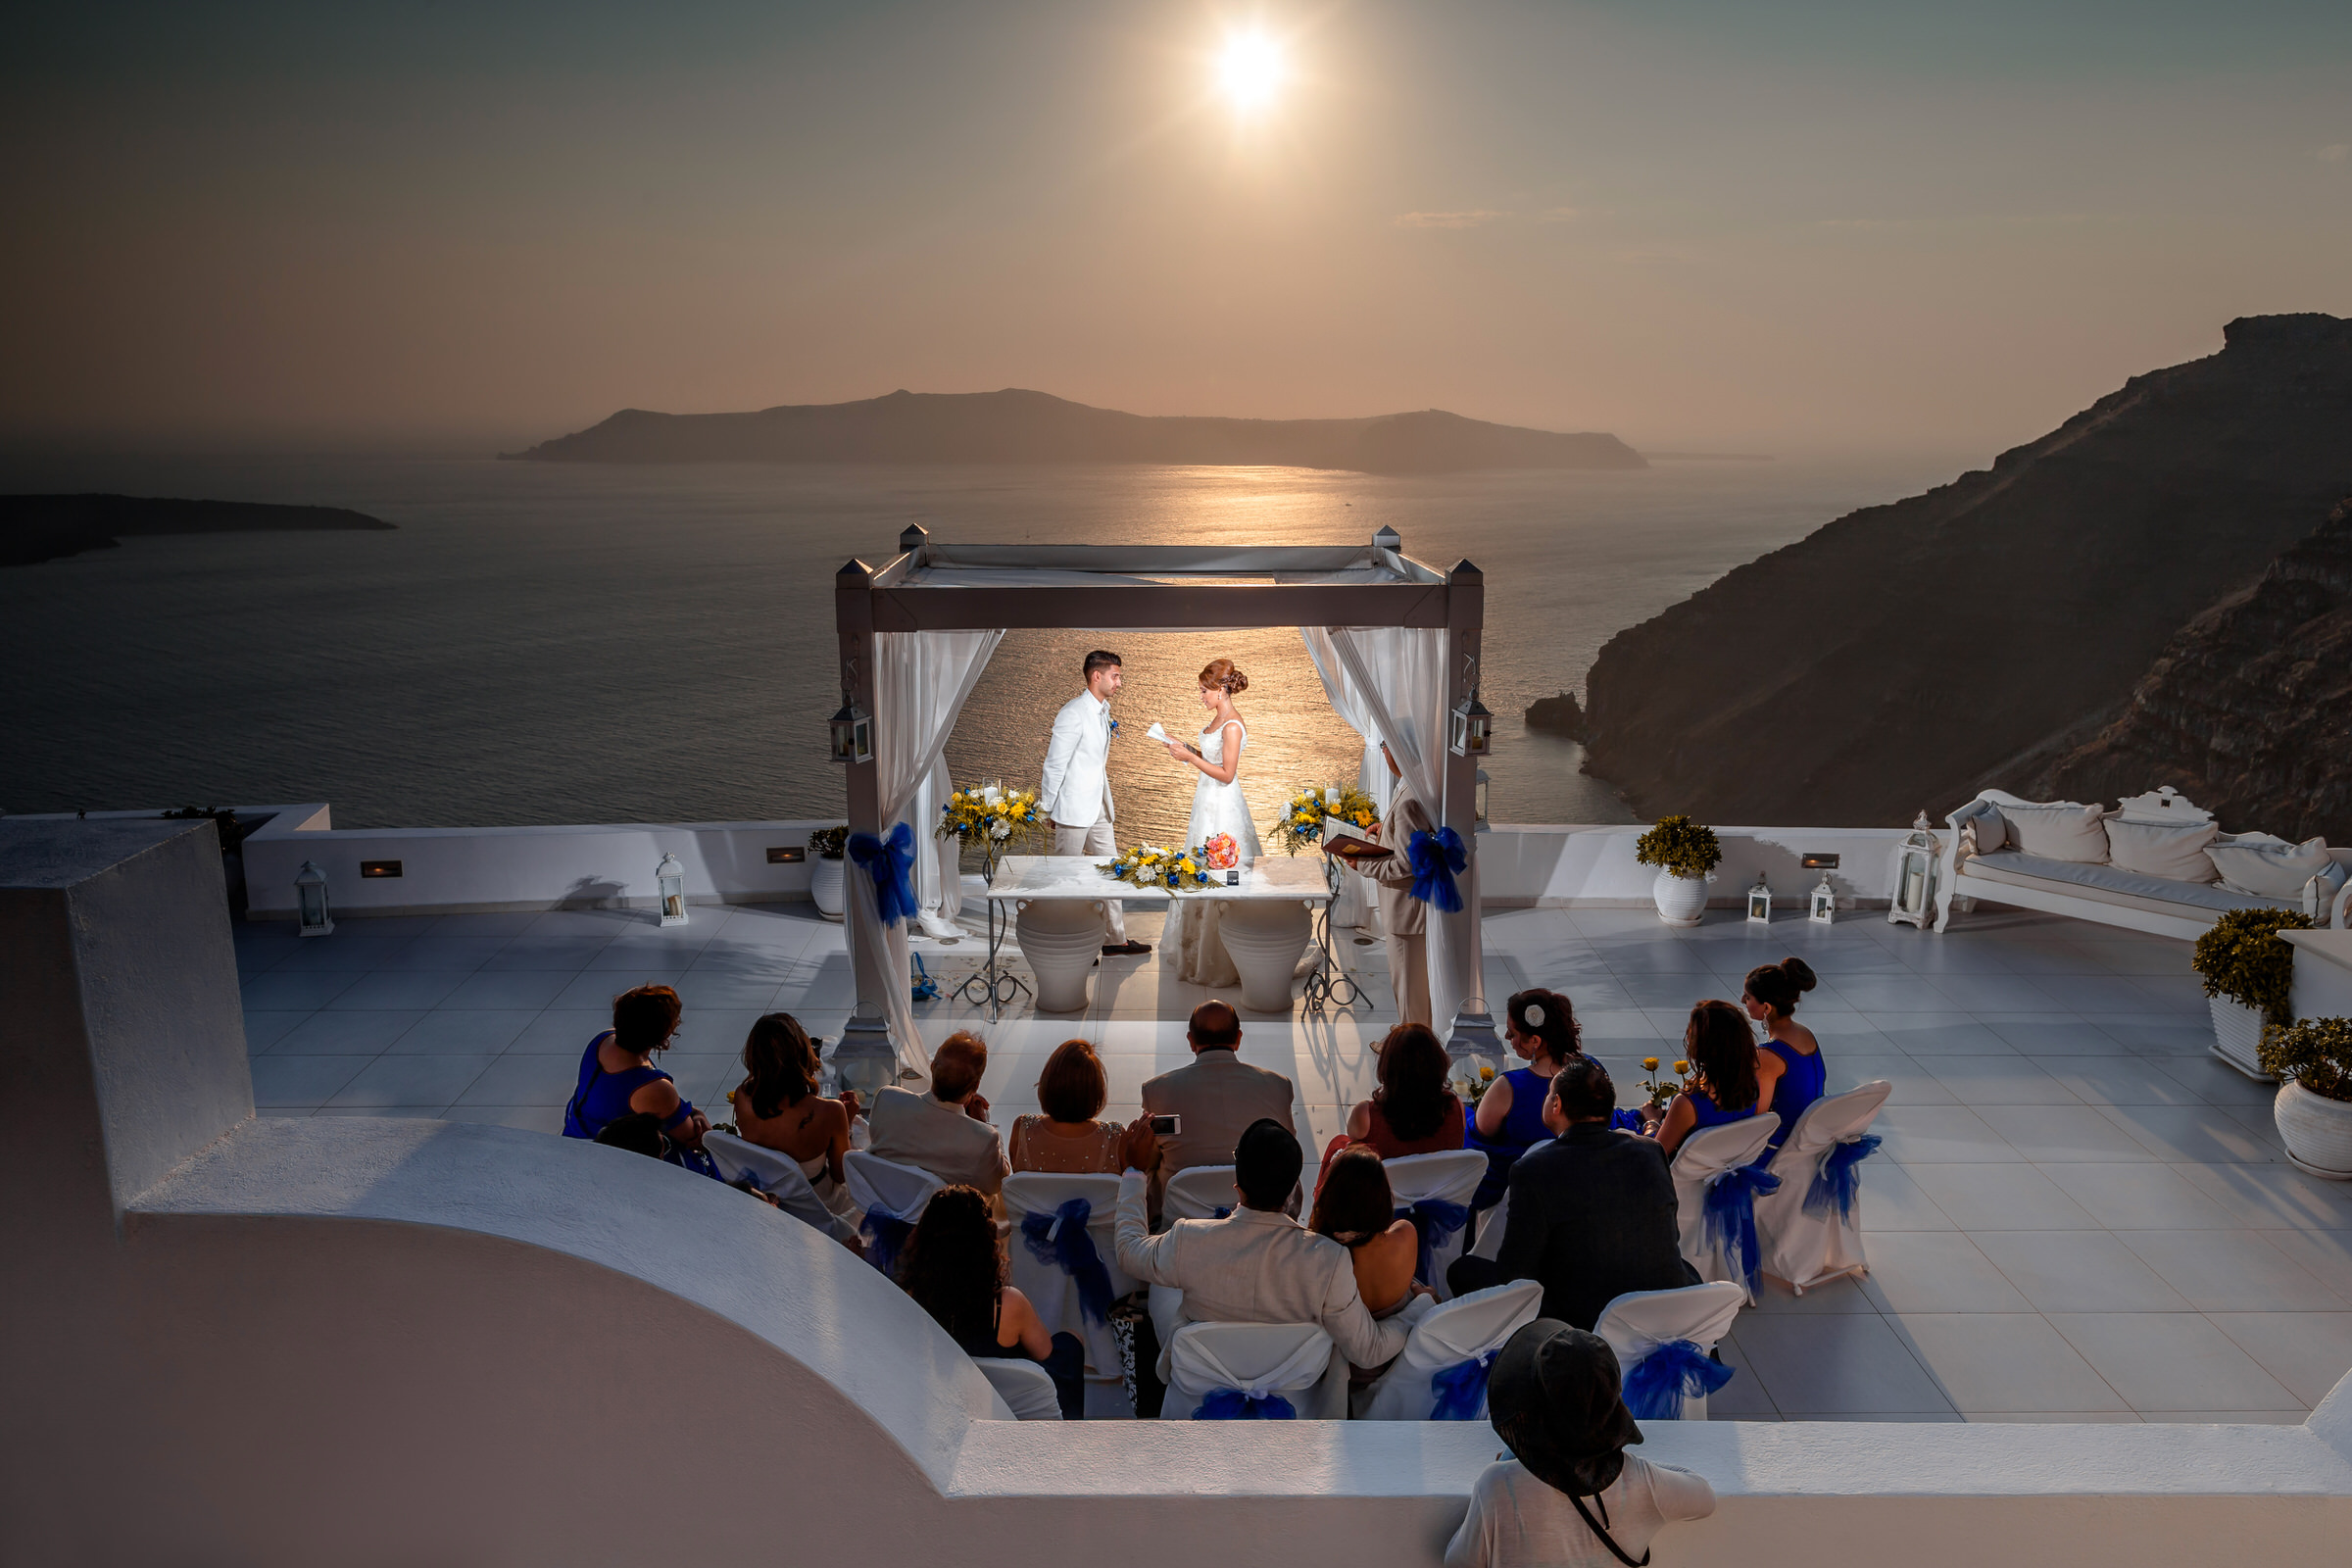 Intimate evening outdoor ceremony under tent - photo by Eye Jogia Photography